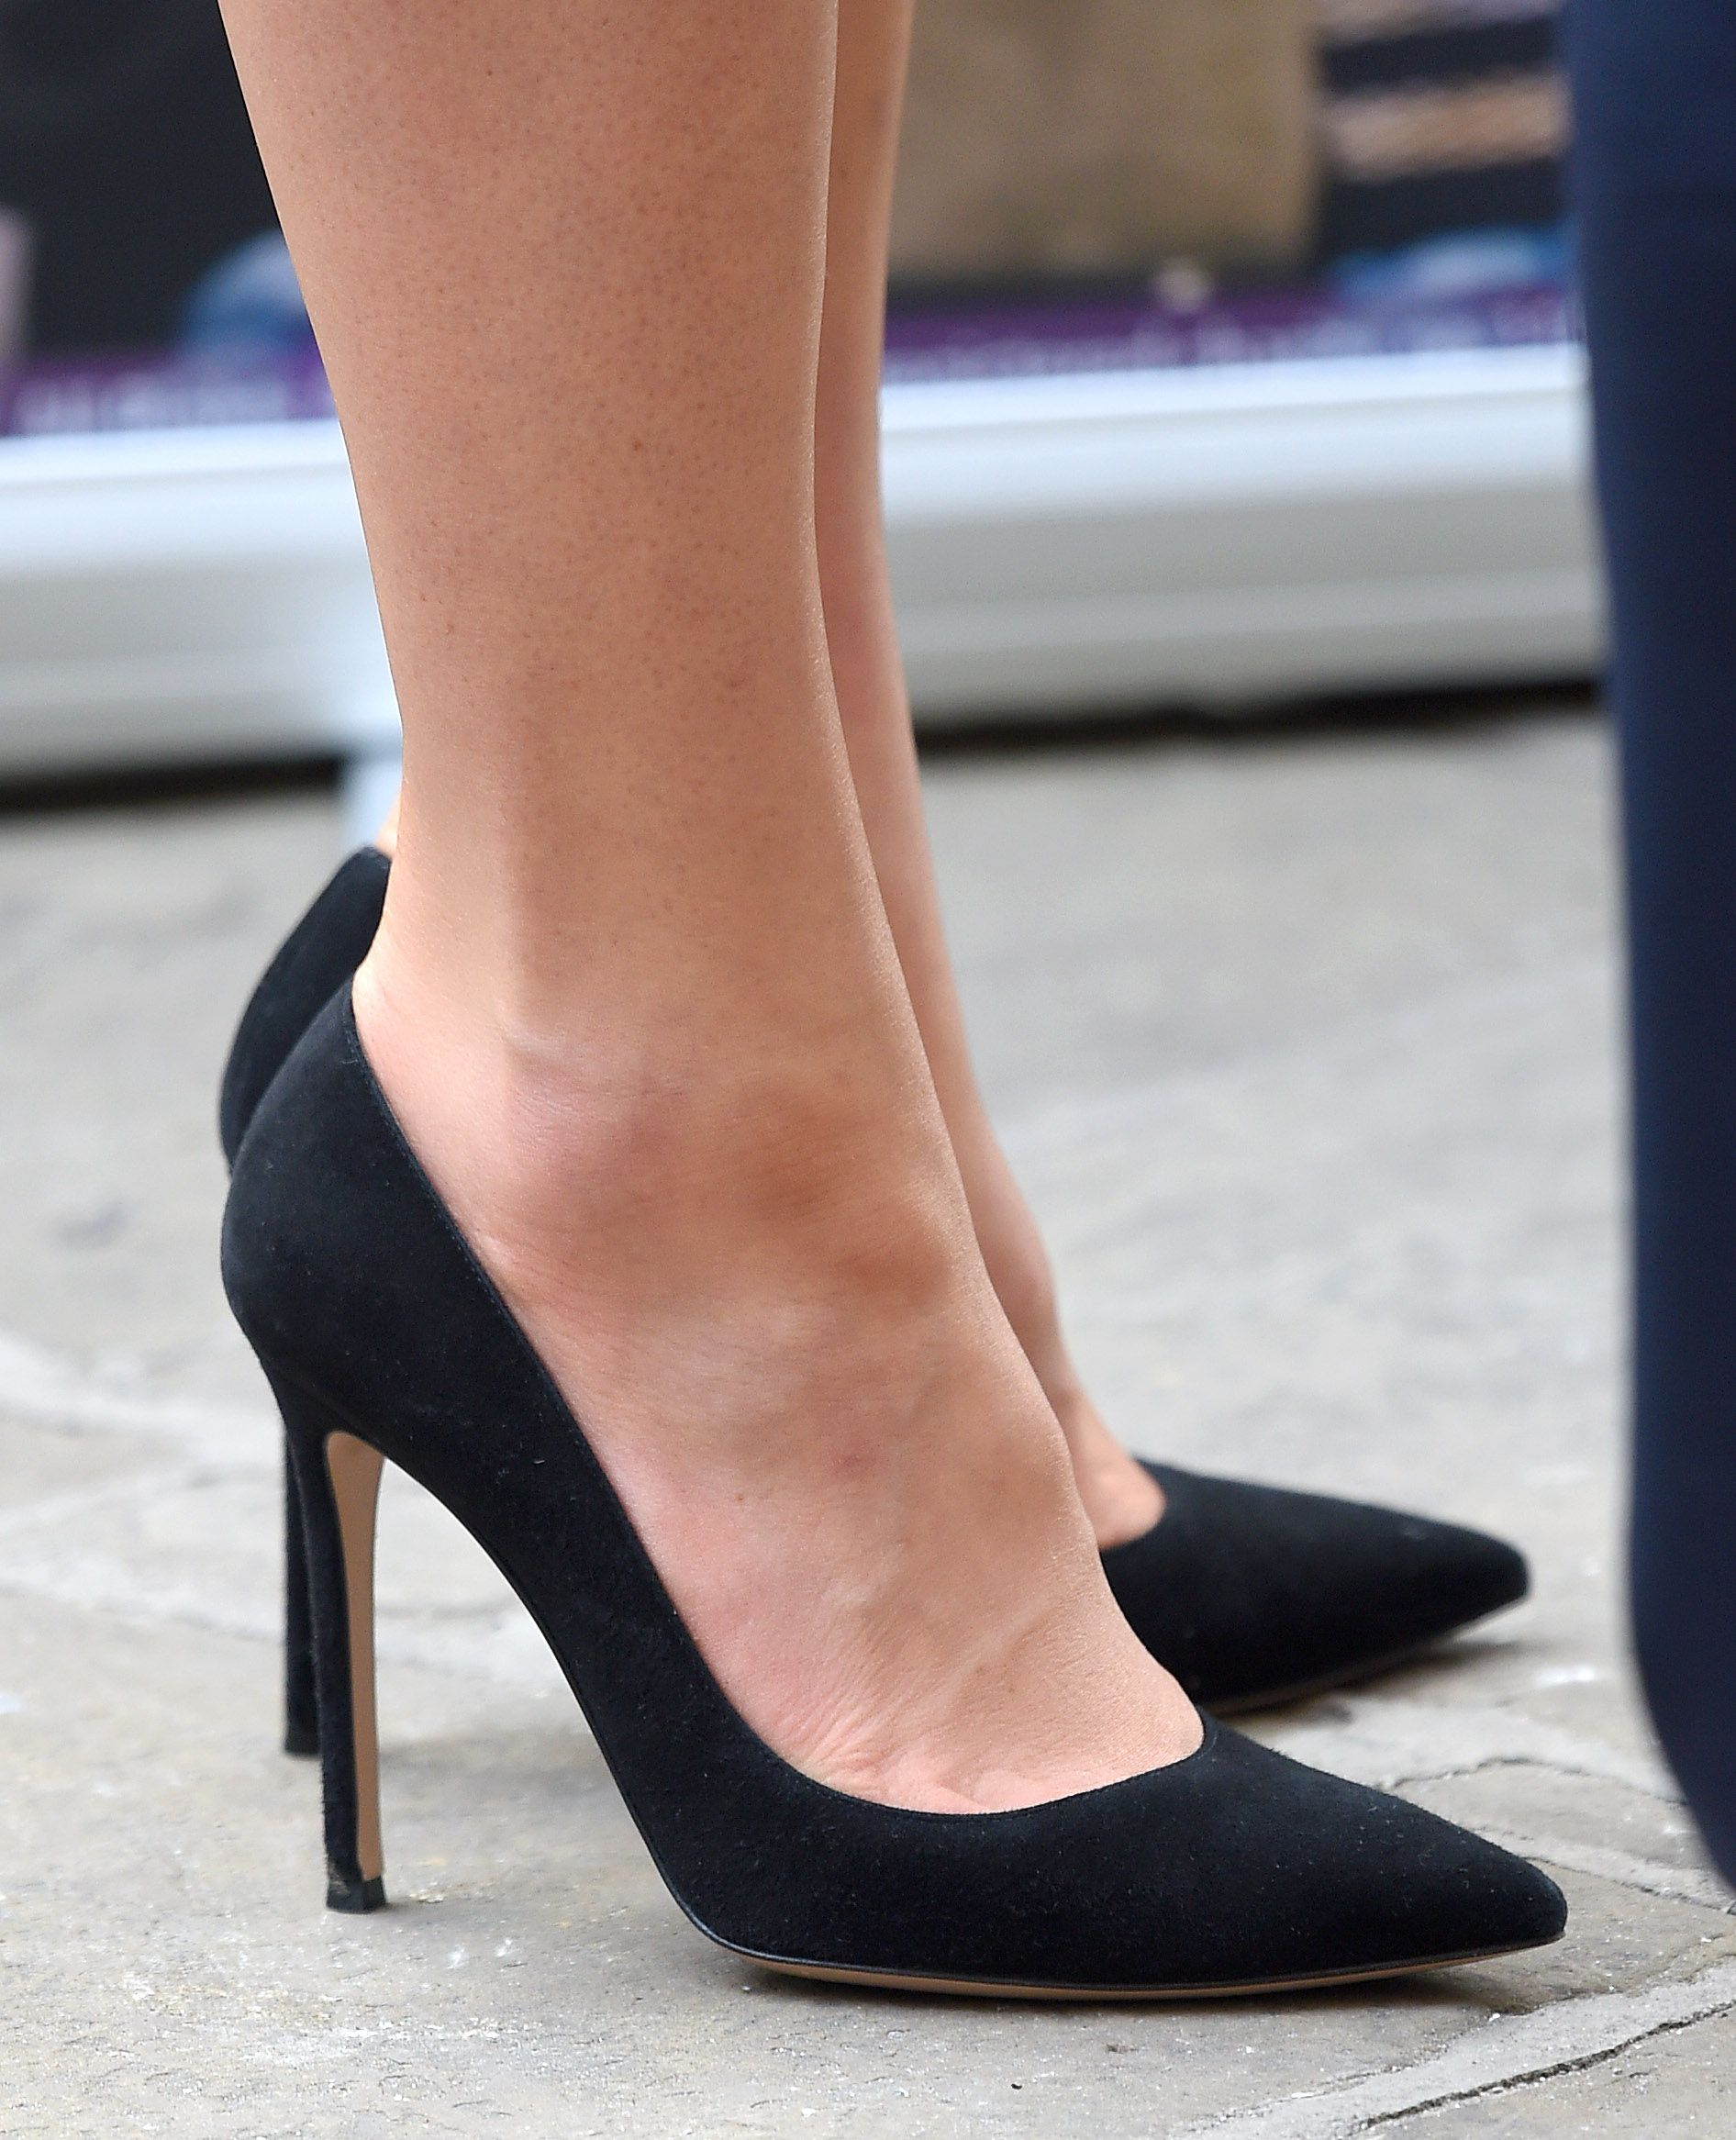 df7b16f38f9 Kate Middleton s Gianvito Rossi High Heels - Stuff From TV. Gianvito Rossi  Gianvito pumps